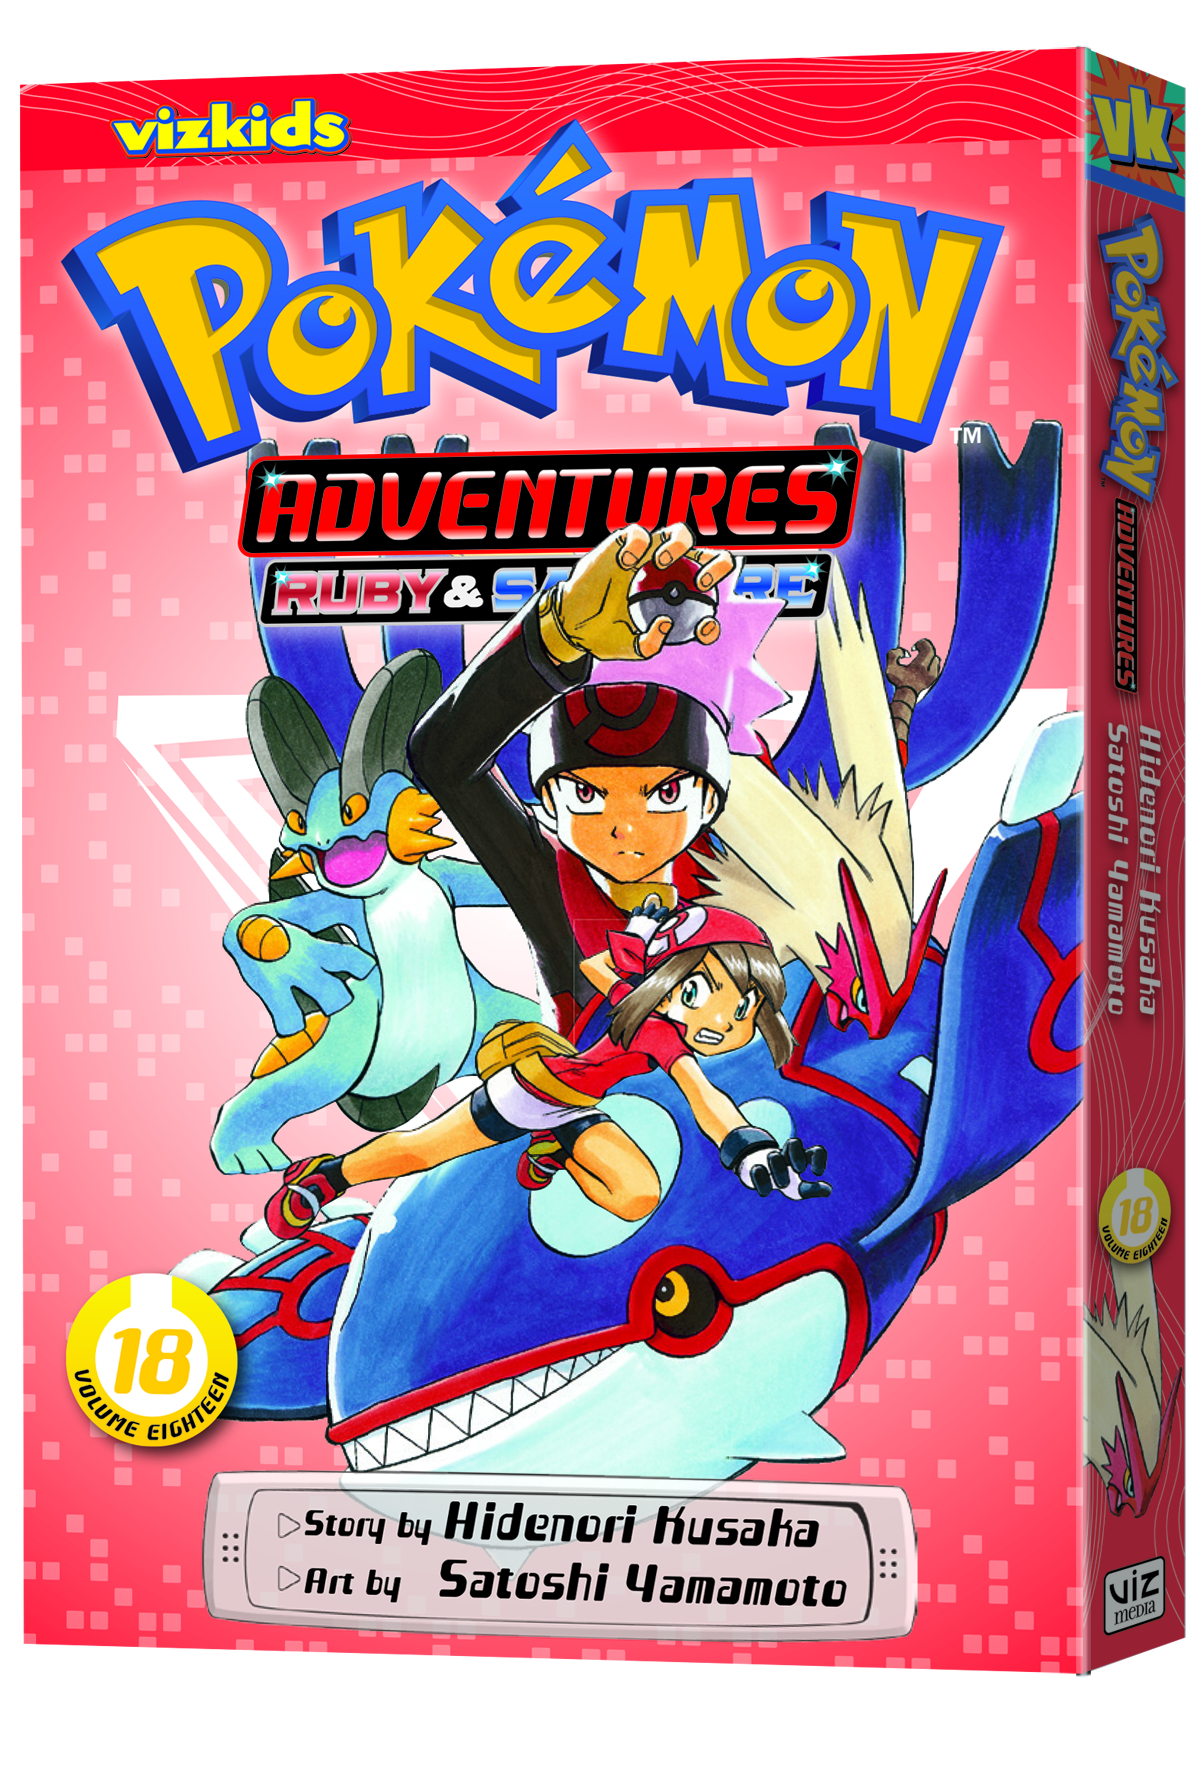 POKEMON ADVENTURES GN VOL 18 RUBY SAPPHIRE